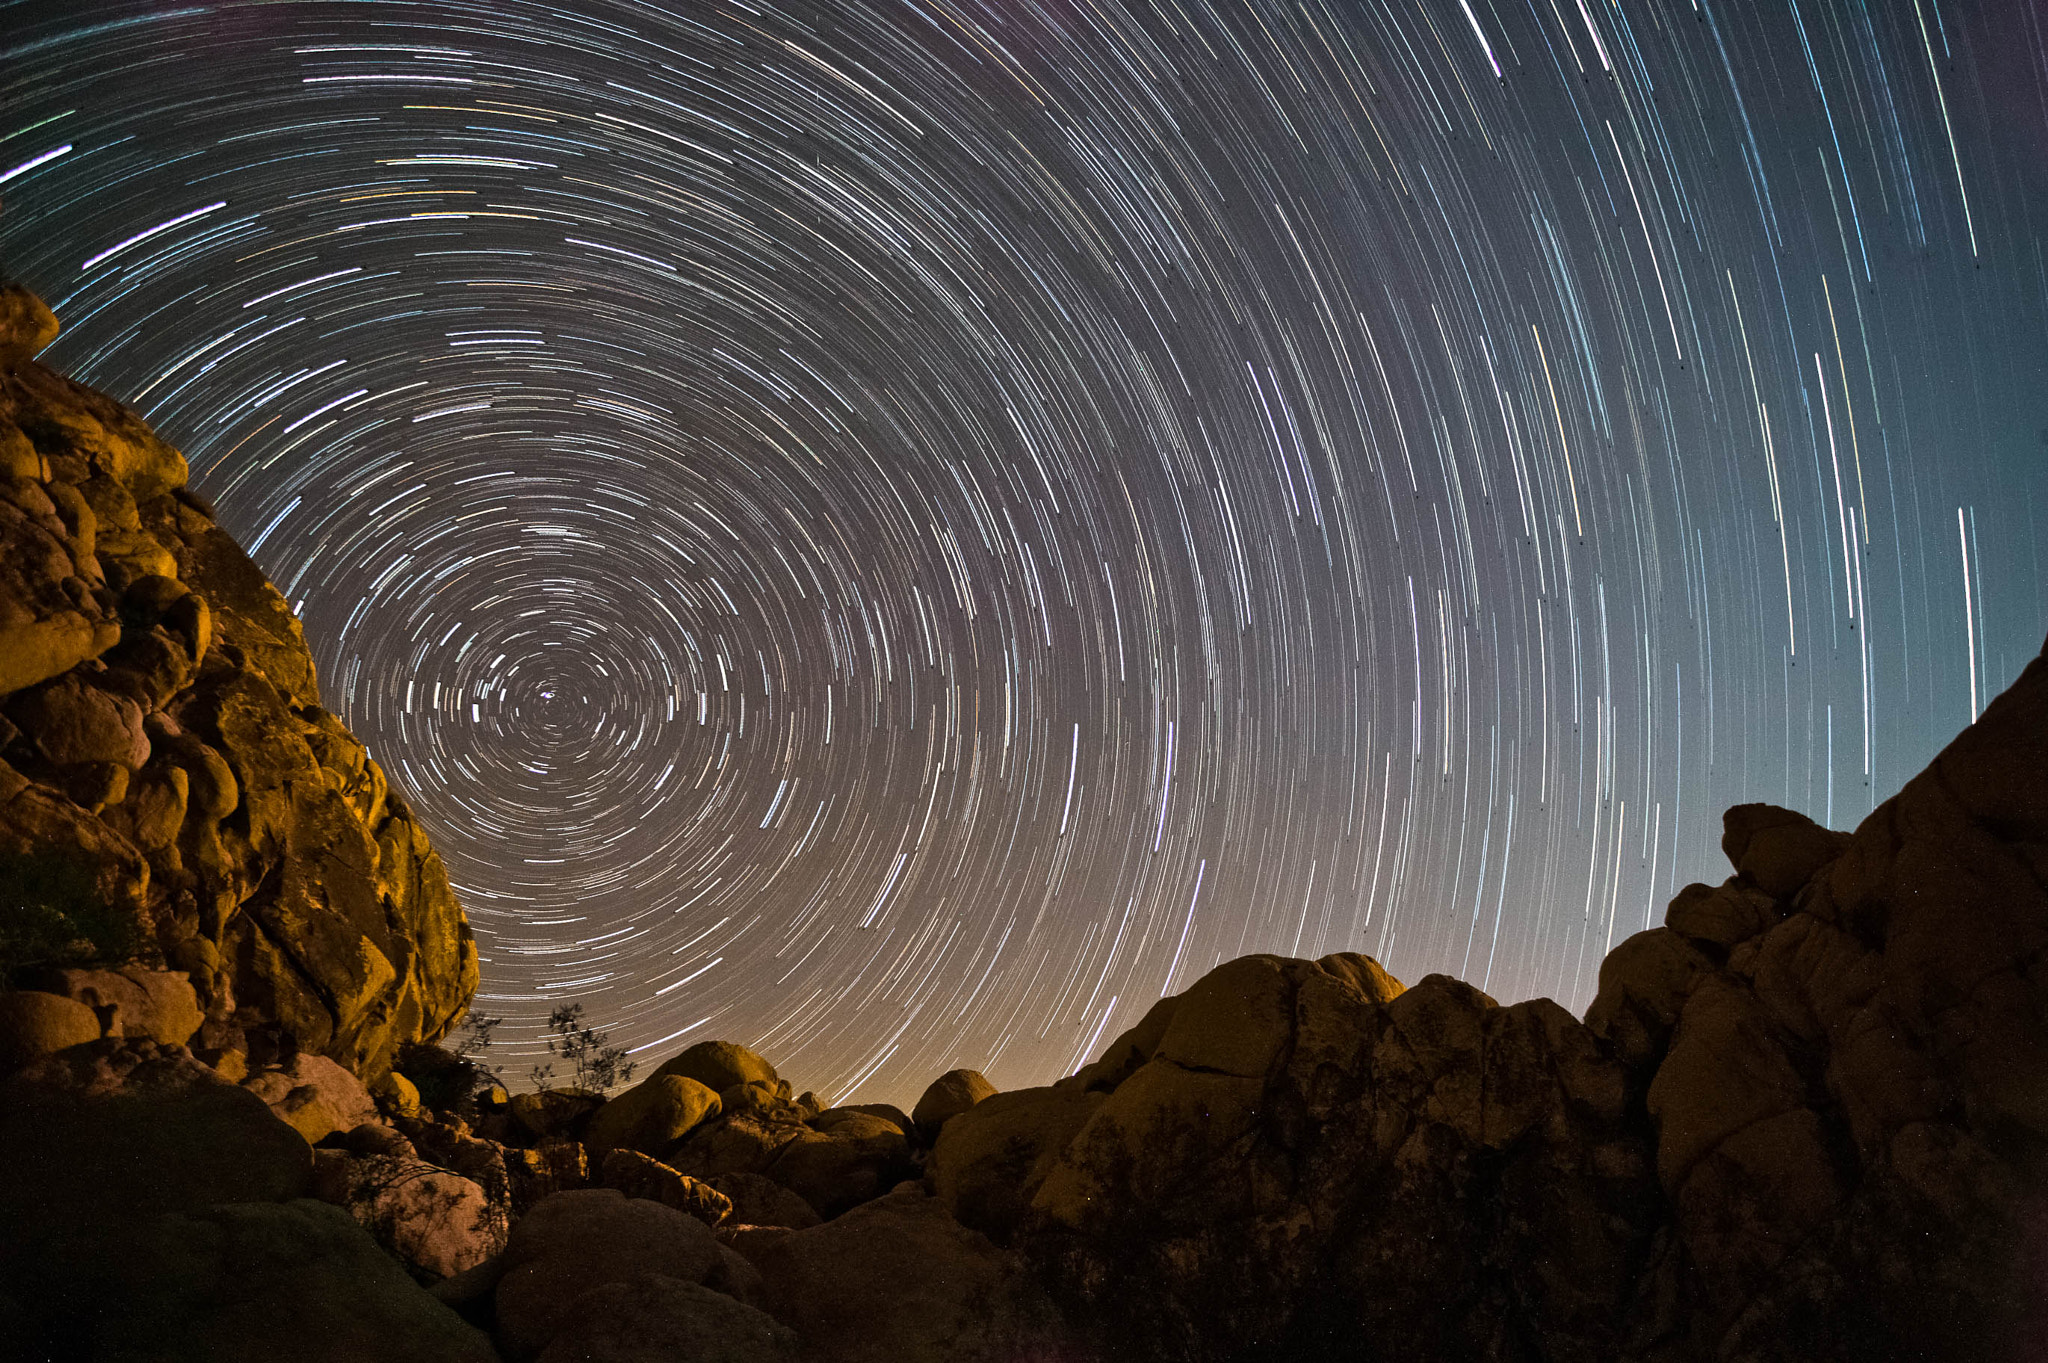 Photograph ...and the earth continues to spin. by Tim Beccue on 500px